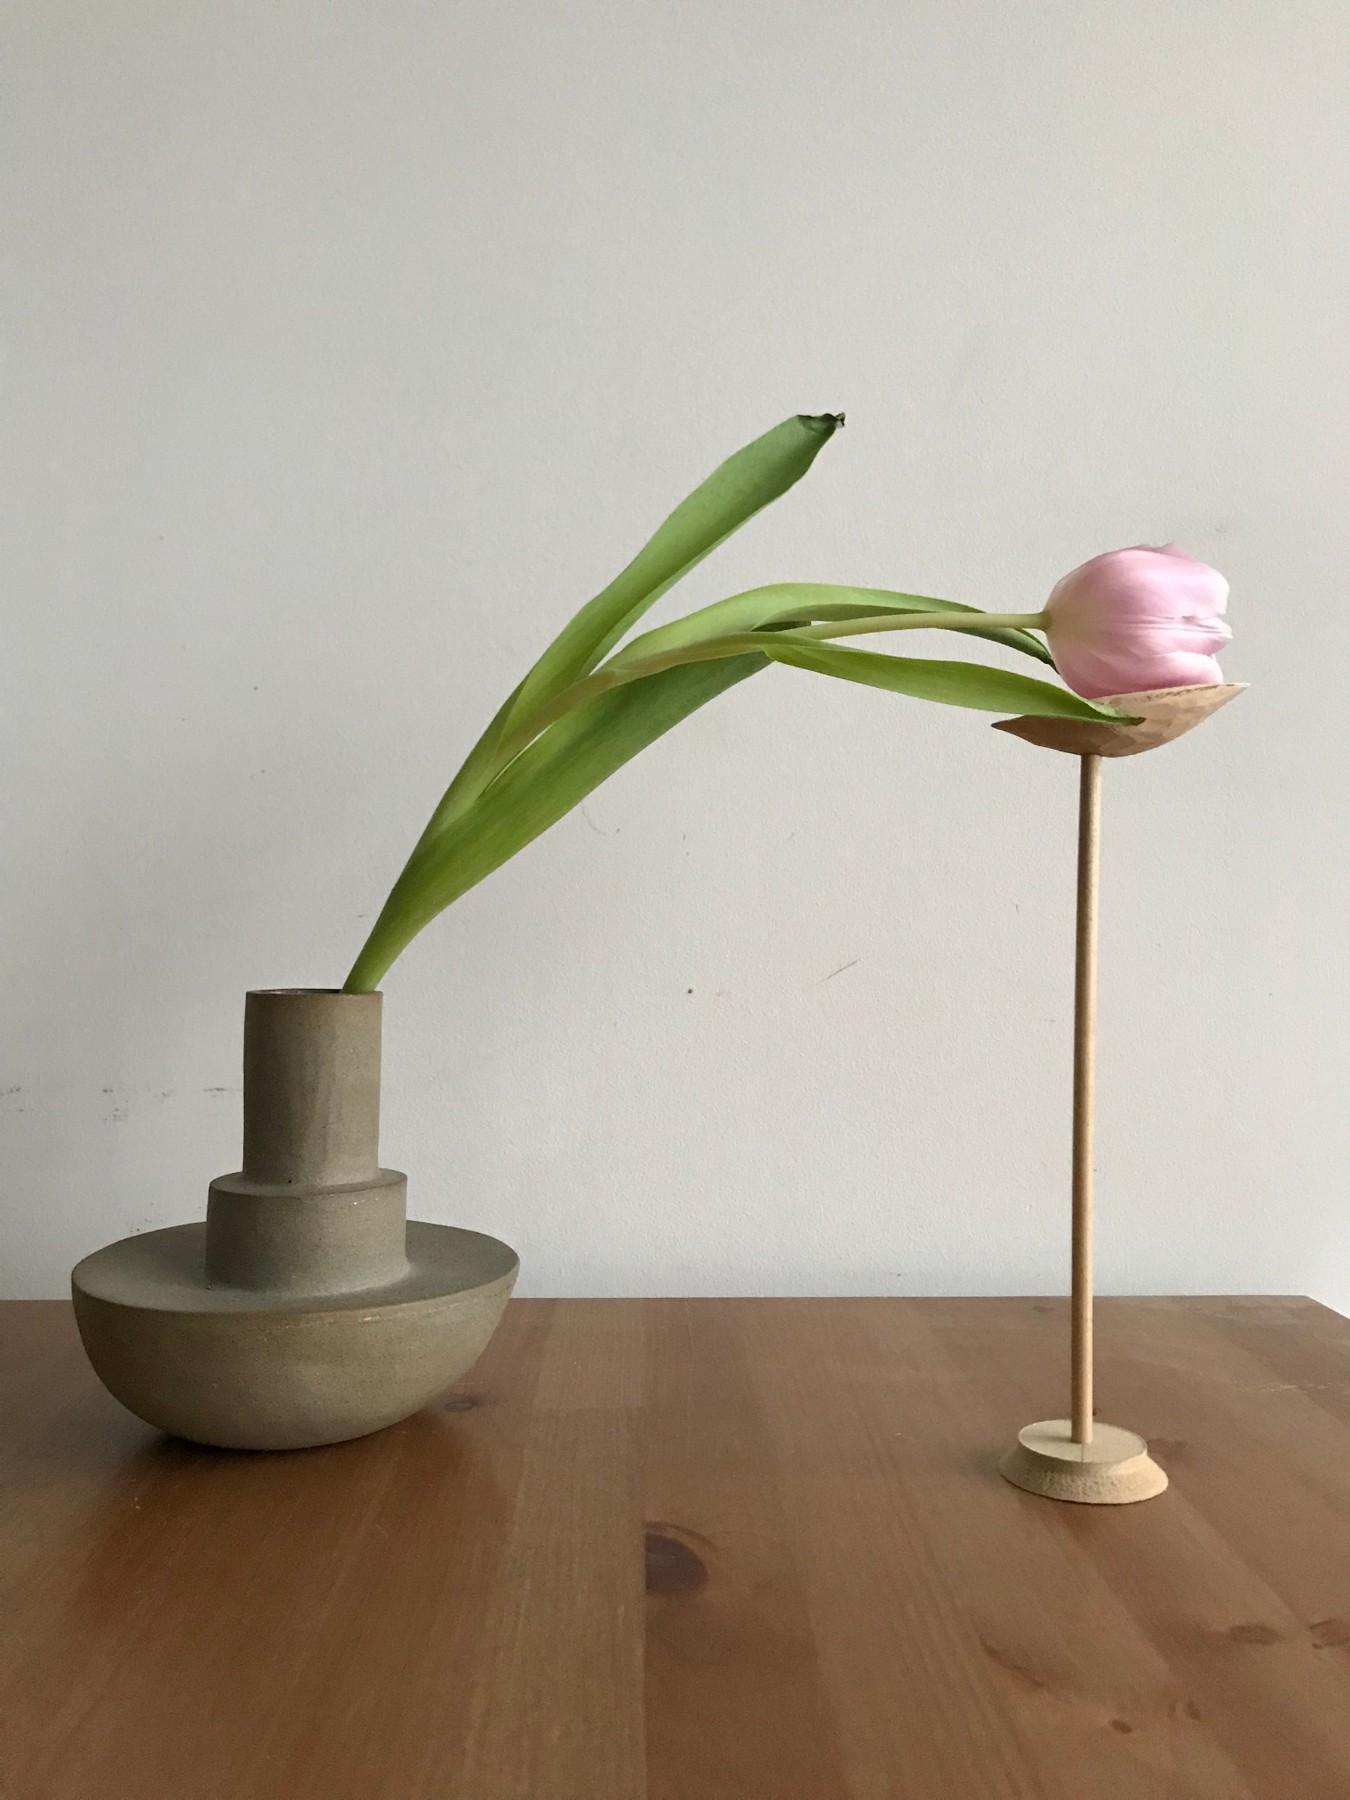 Support for single flower prototype